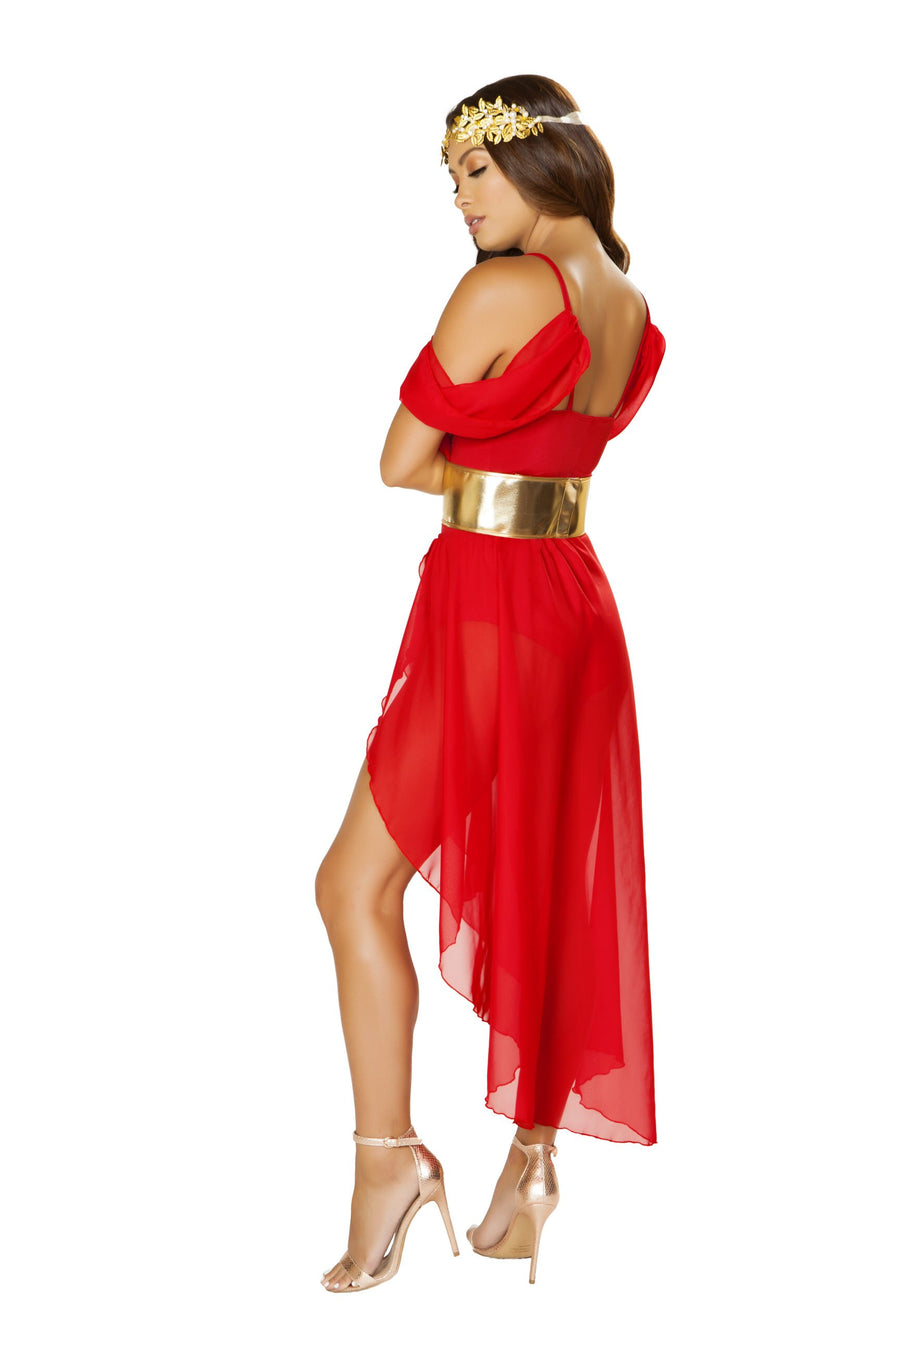 Goddess of Love Costume - Costumes, YourLamode - YourLamode